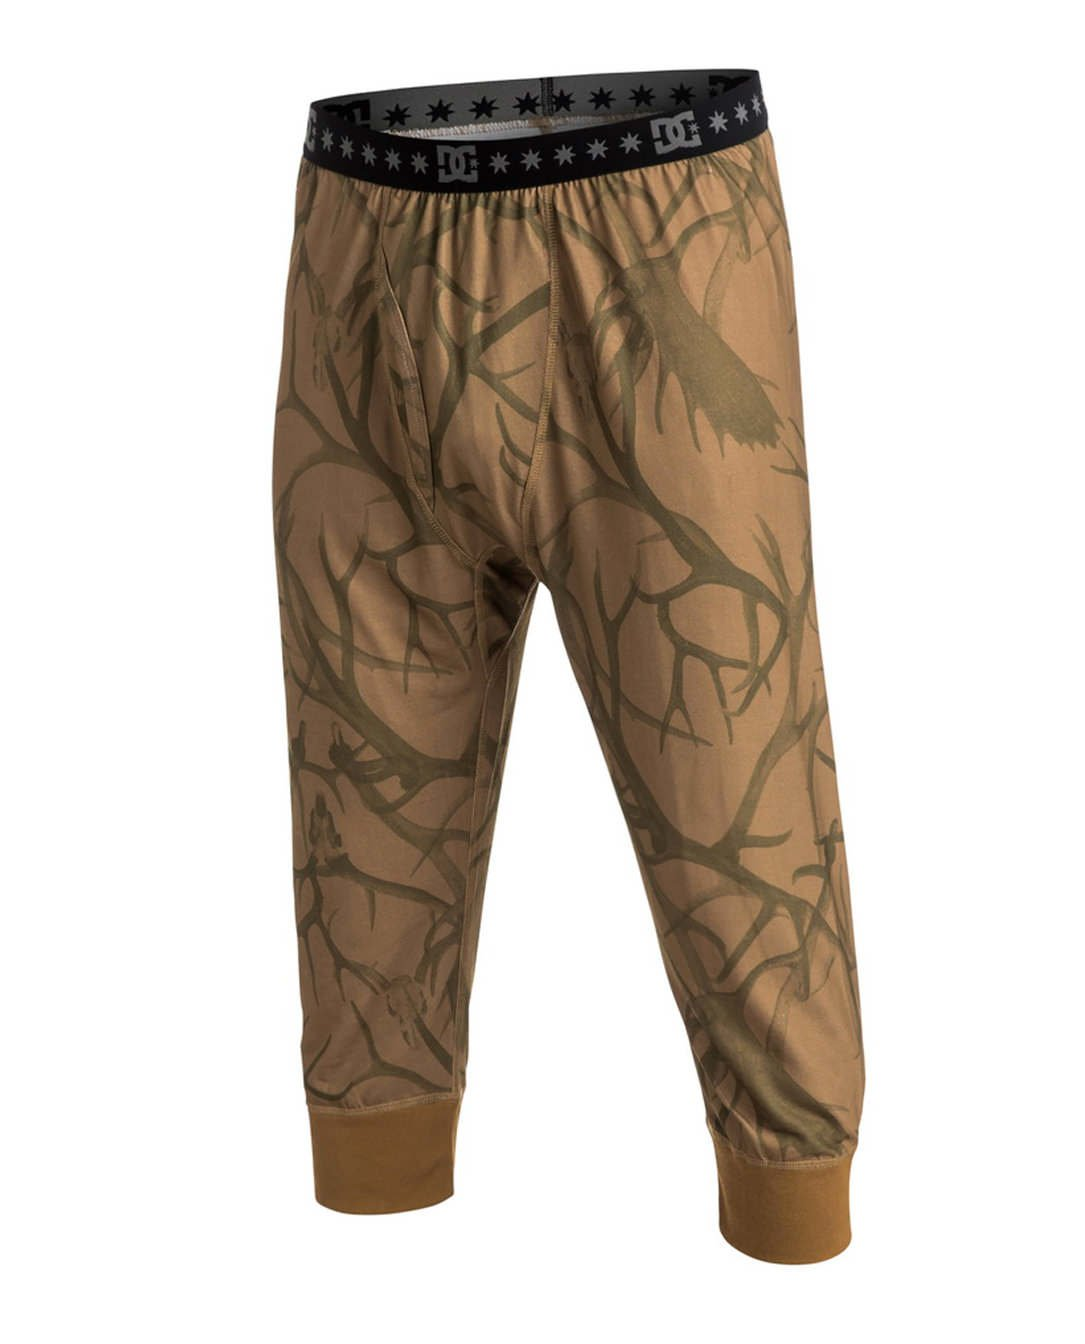 DC SHOES INTIMO BOTTOM PRIMO STRATO - LM BOARD STORE